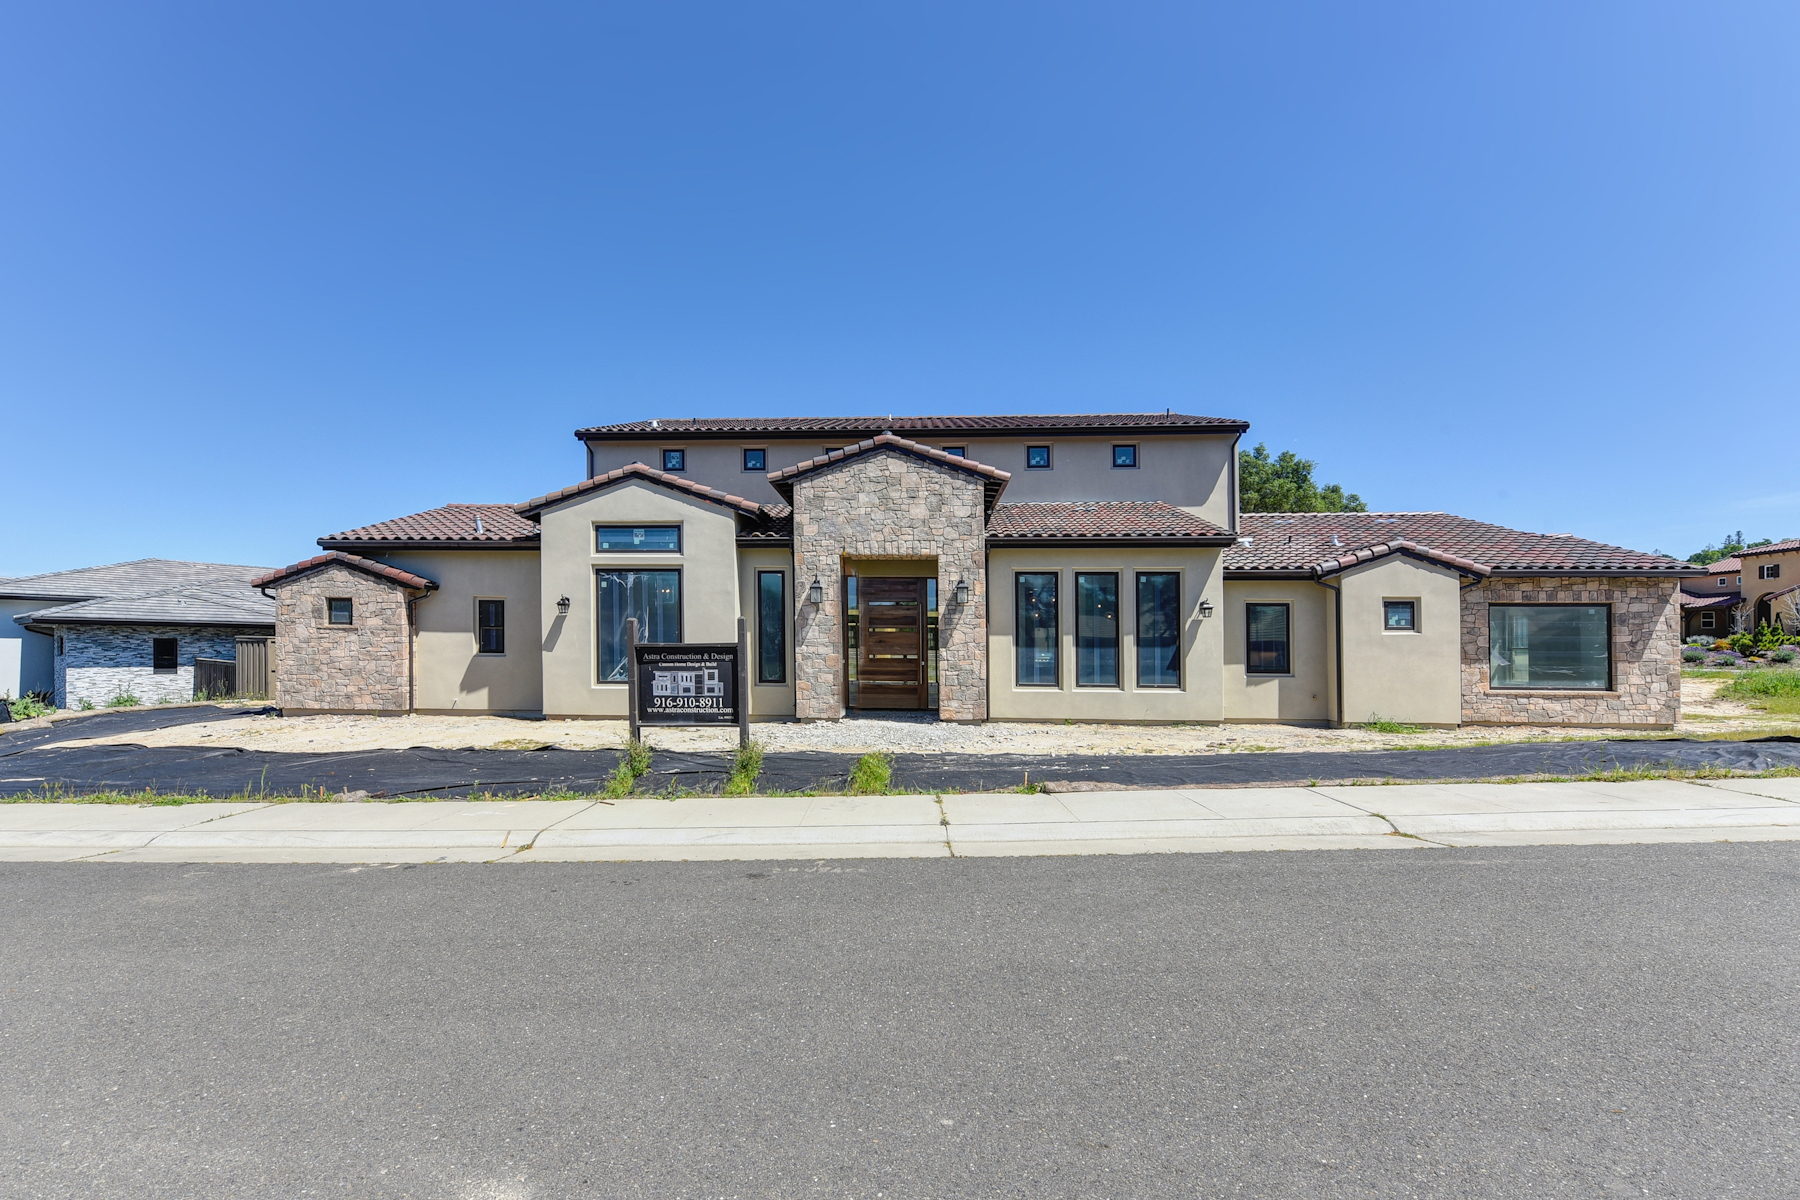 single family homes for Active at 8117 Woodland Grove Pl, Granite Bay, CA 95746 8117 Woodland Grove Pl Granite Bay, California 95746 United States